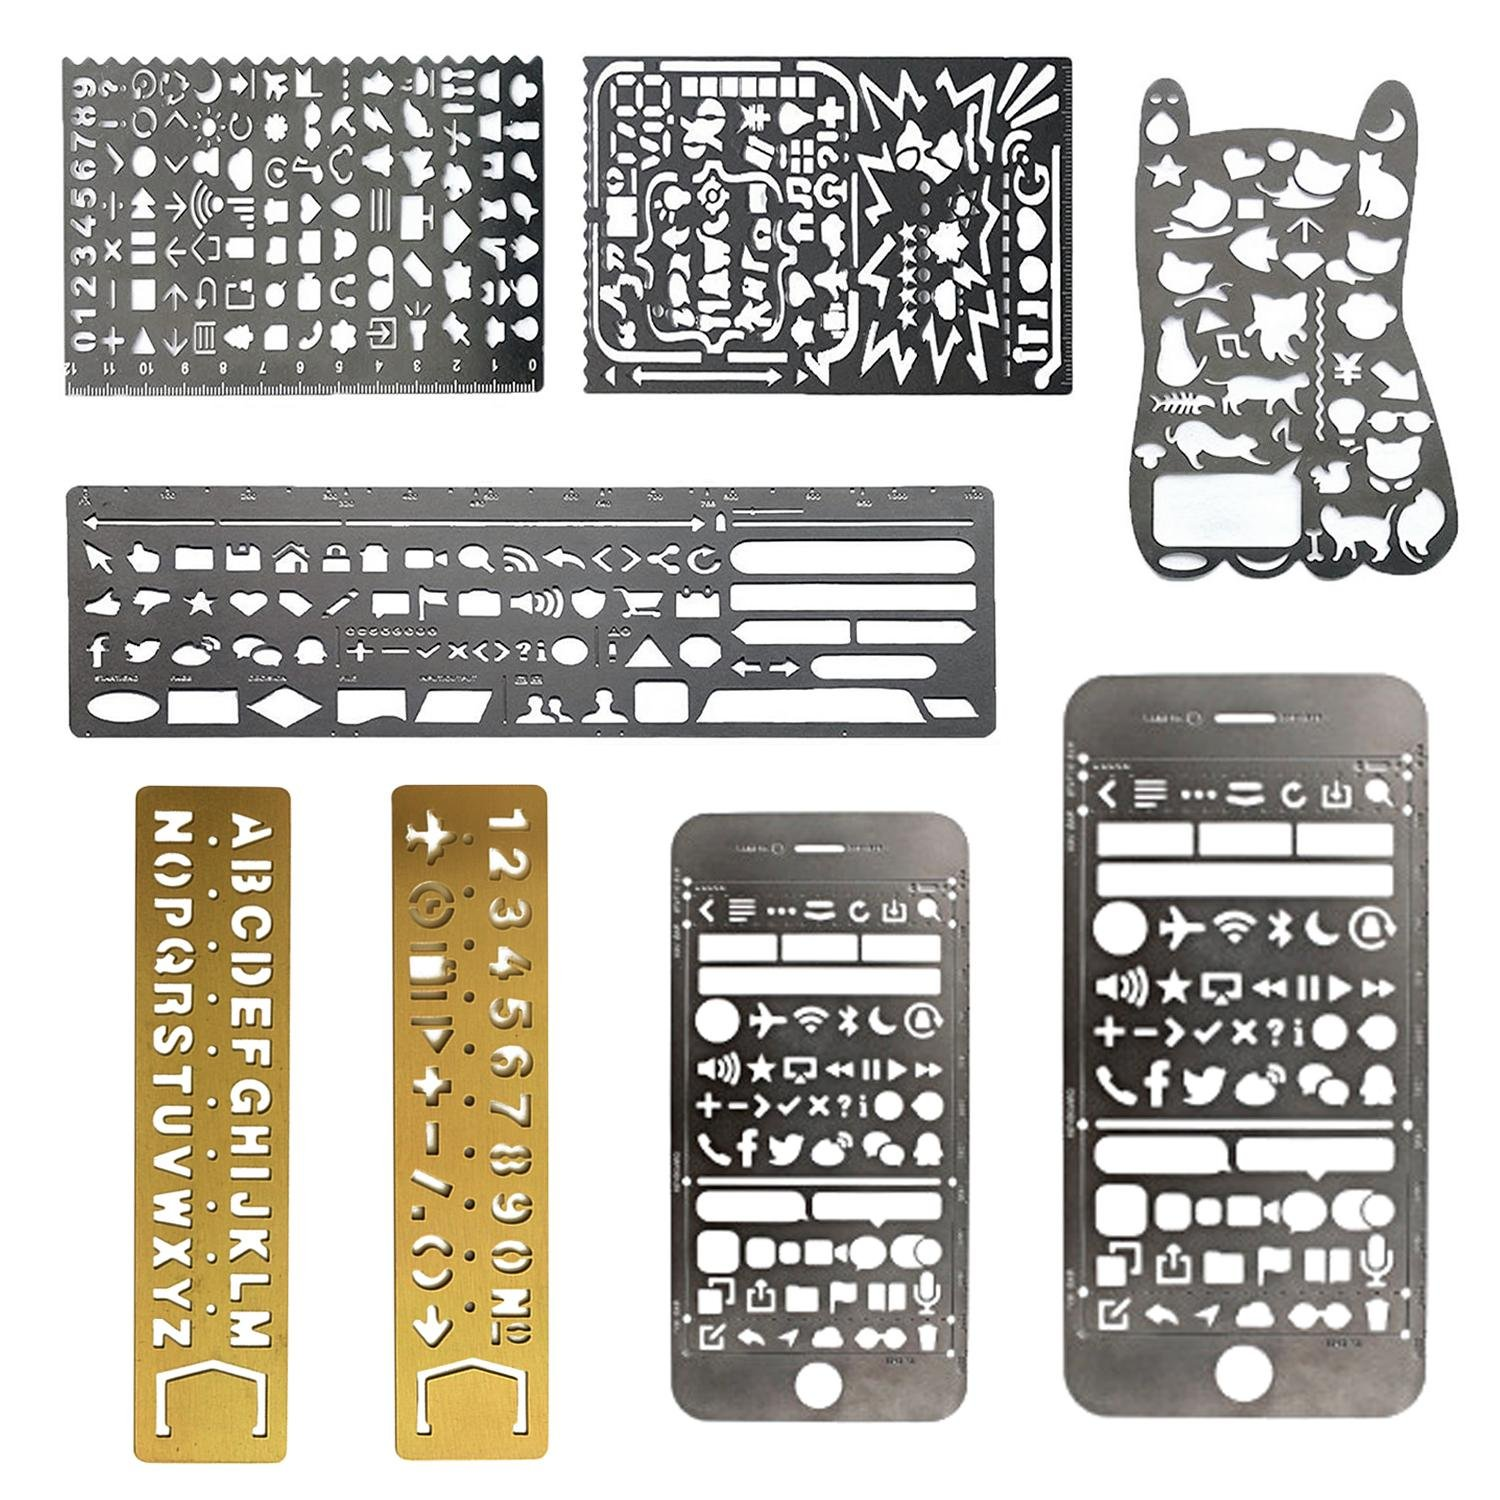 Aolvo 8 In1 Bullet Journal Stencil Template Set Drawing Graffiti Stainless Steel Ruler with Web UI/Life/Cat/IOS/Number/Alphabet For Journal Scrapbook Craft Projects